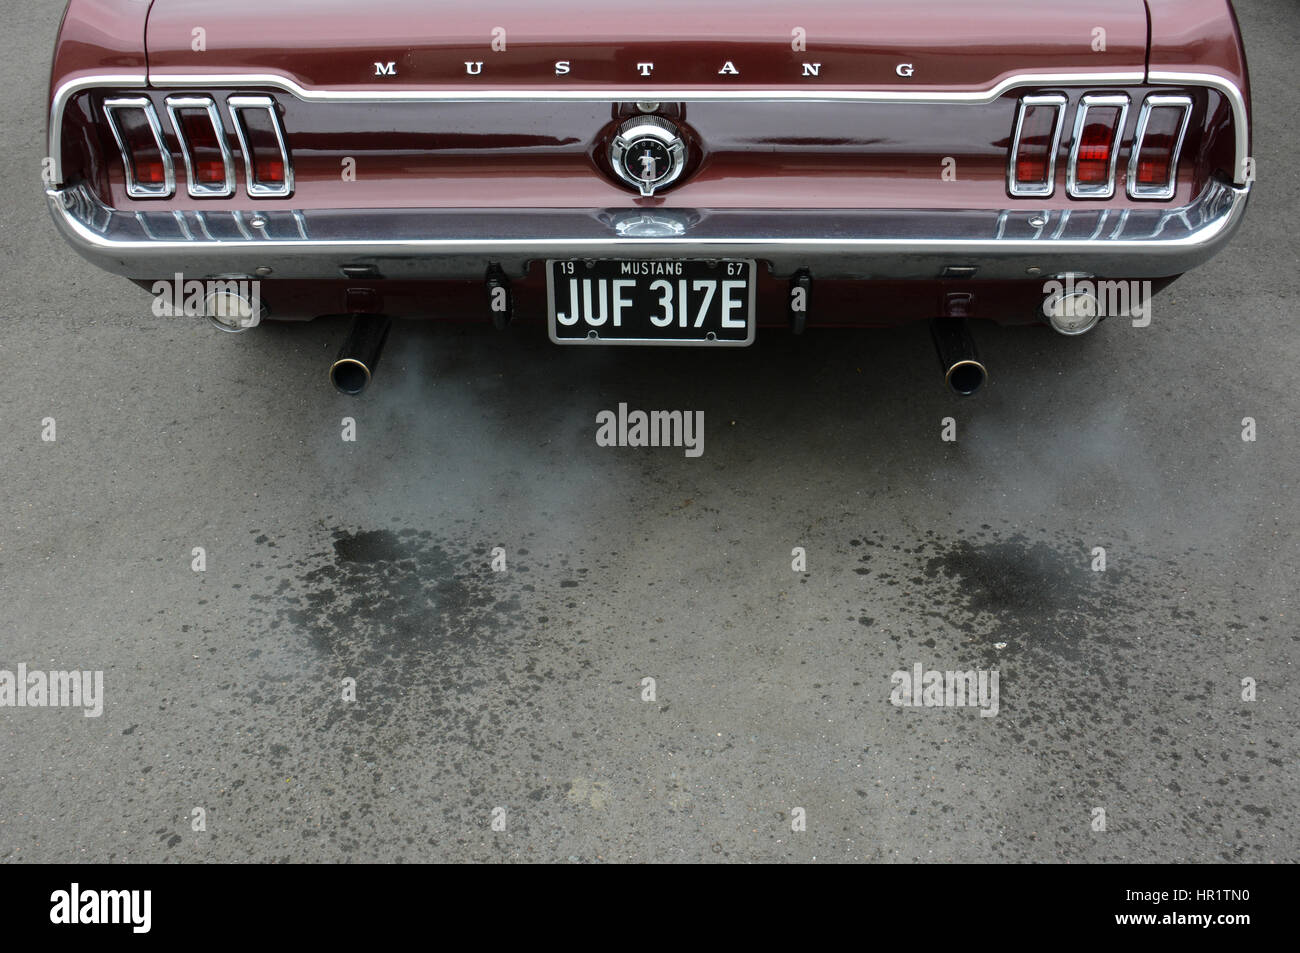 1967 classic burgundy Ford Mustang Coupe with water in the exhaust fumes as the V8 engine warms up Stock Photo